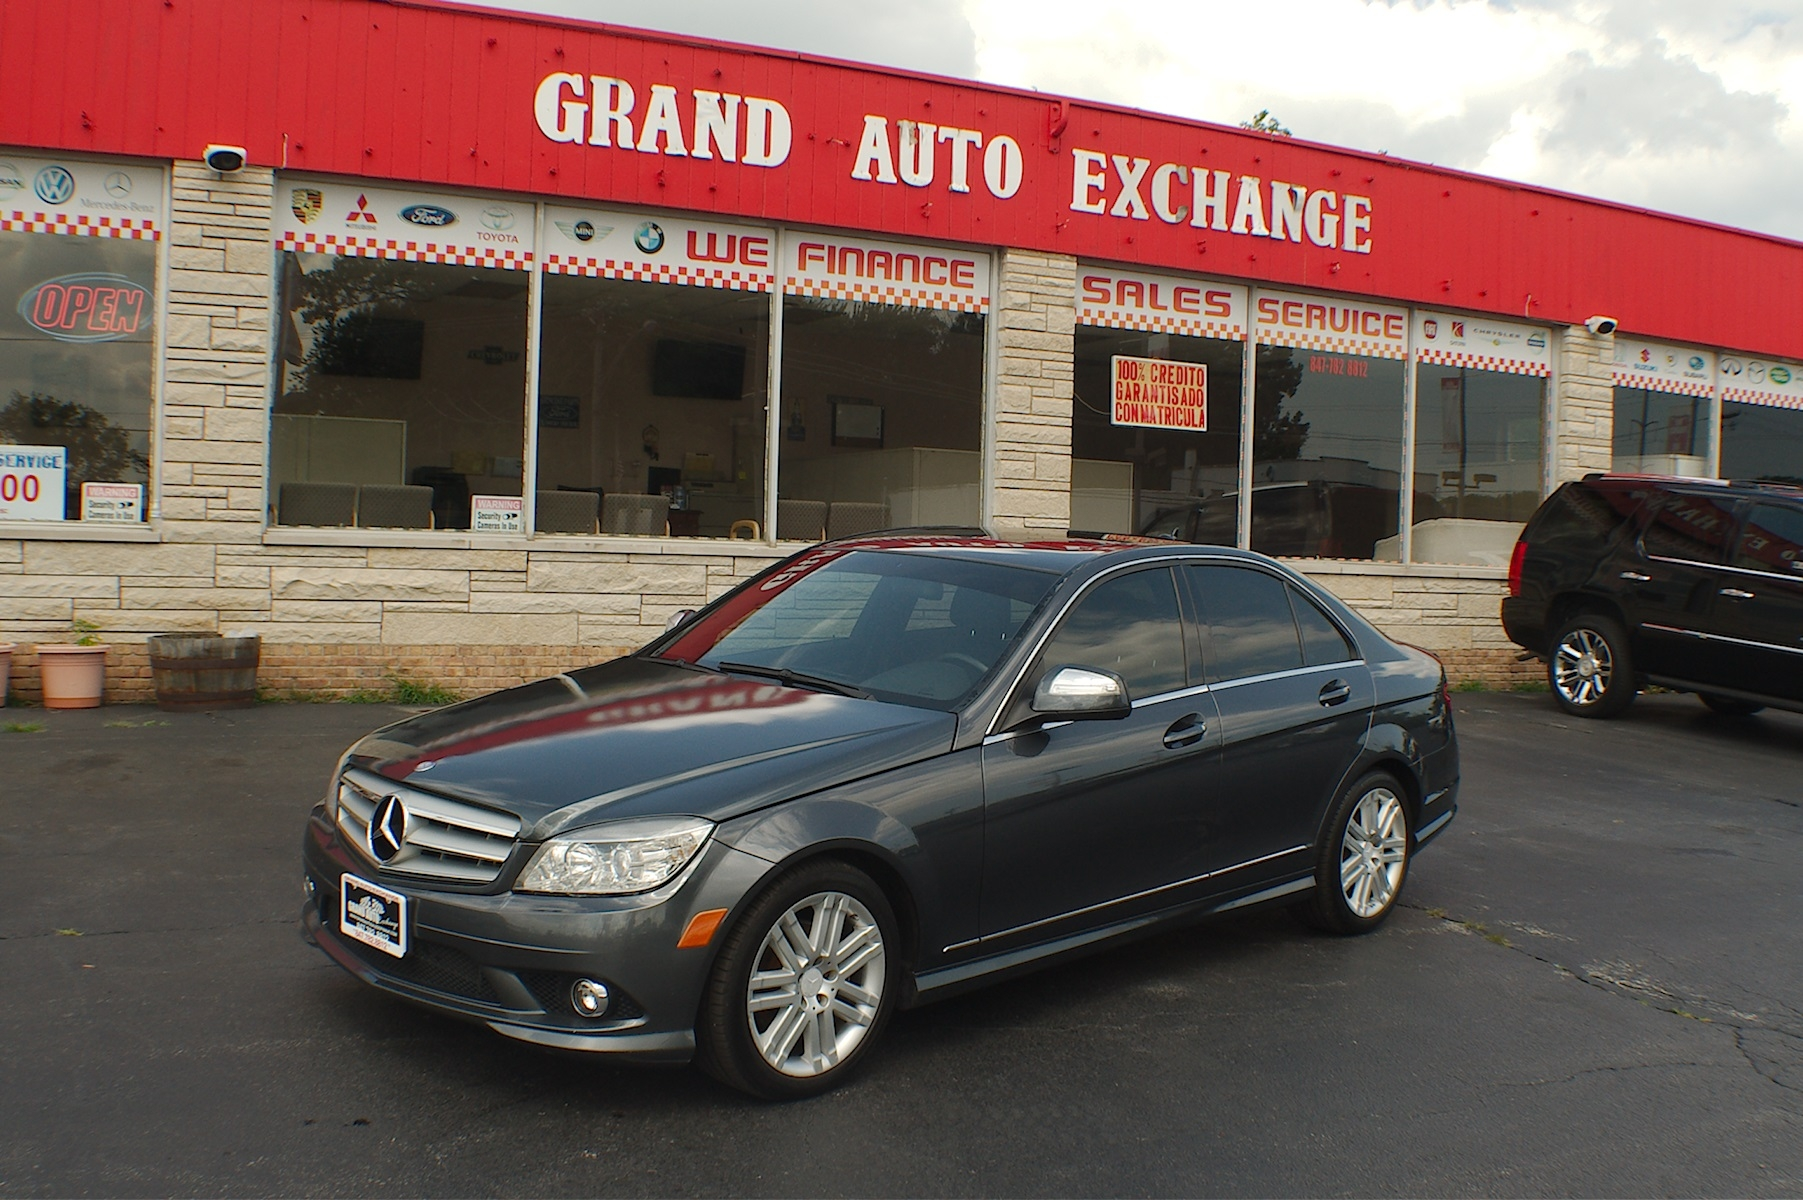 2008 Mercedes Benz C300 4Matic Gray Sedan Used Car Sale Antioch Zion Waukegan Lake County Illinois